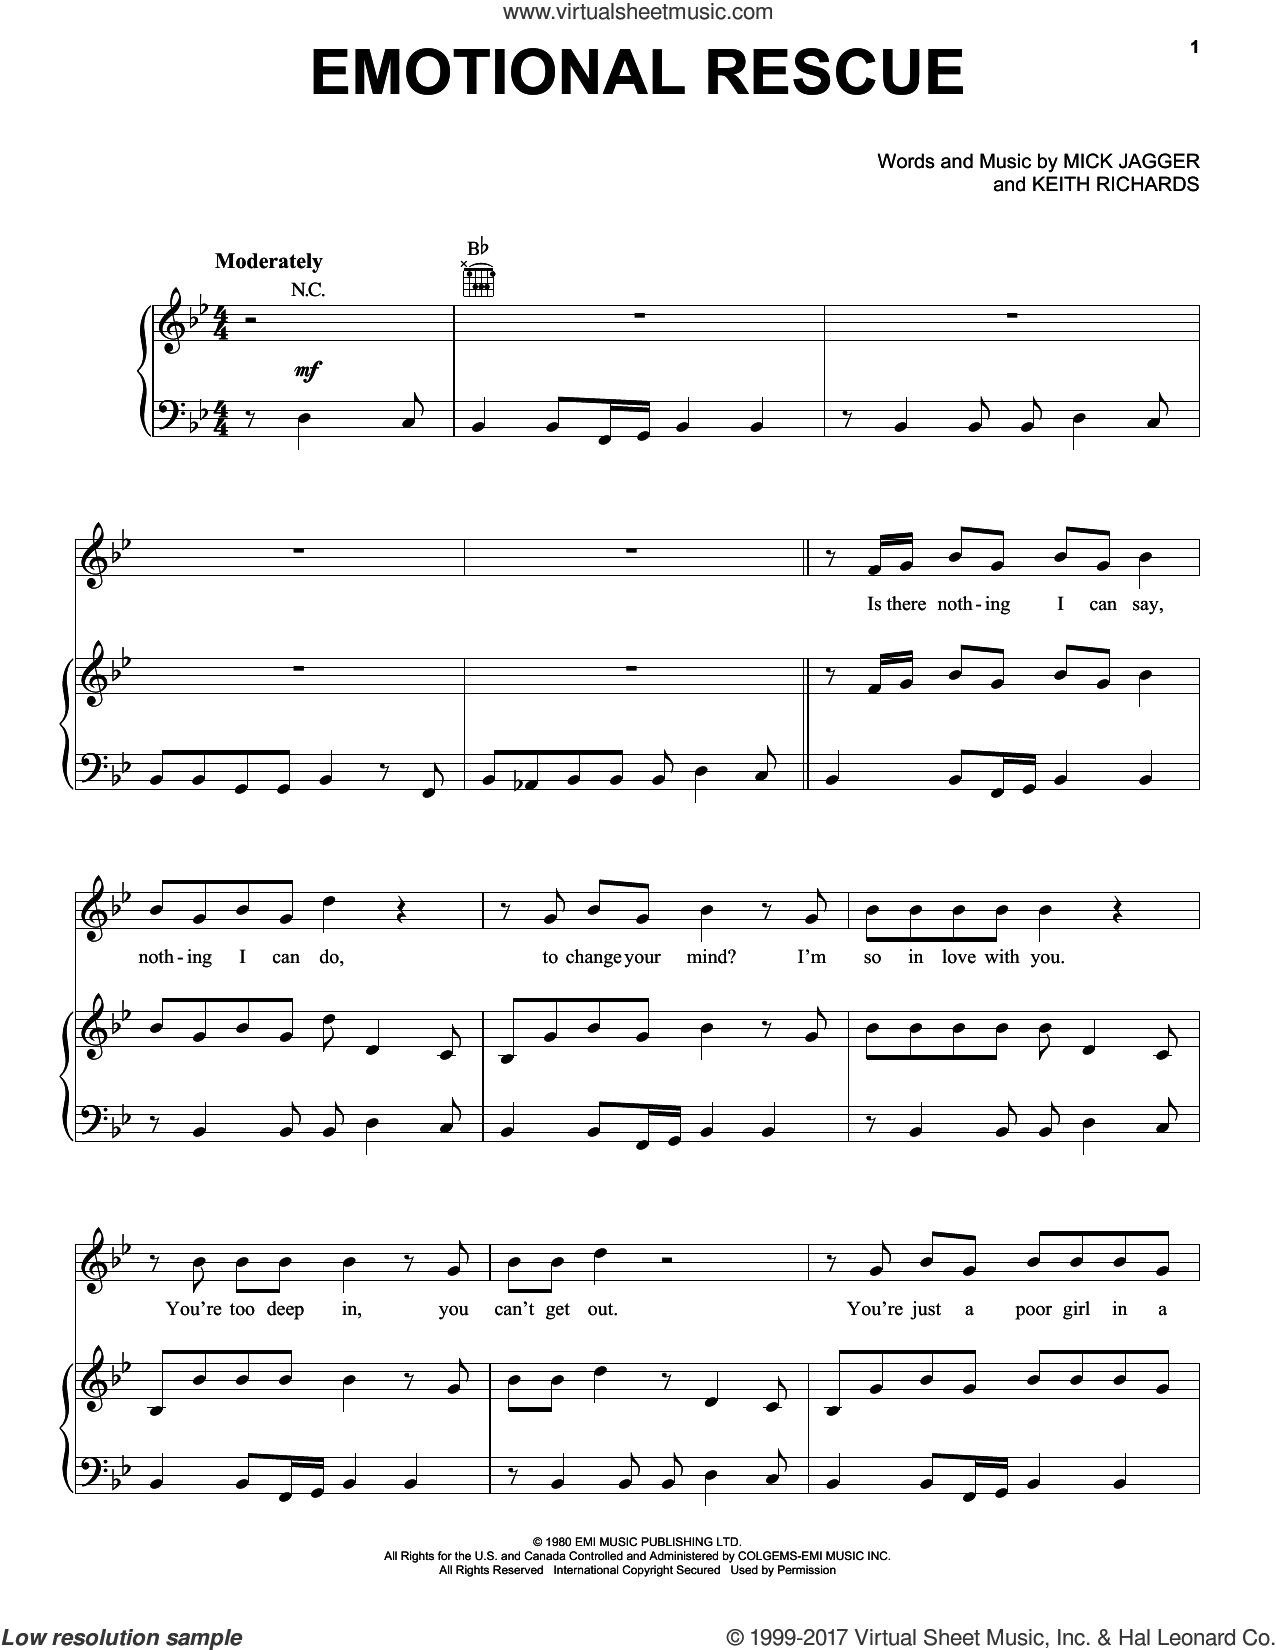 Emotional Rescue sheet music for voice, piano or guitar by The Rolling Stones, Keith Richards and Mick Jagger, intermediate skill level